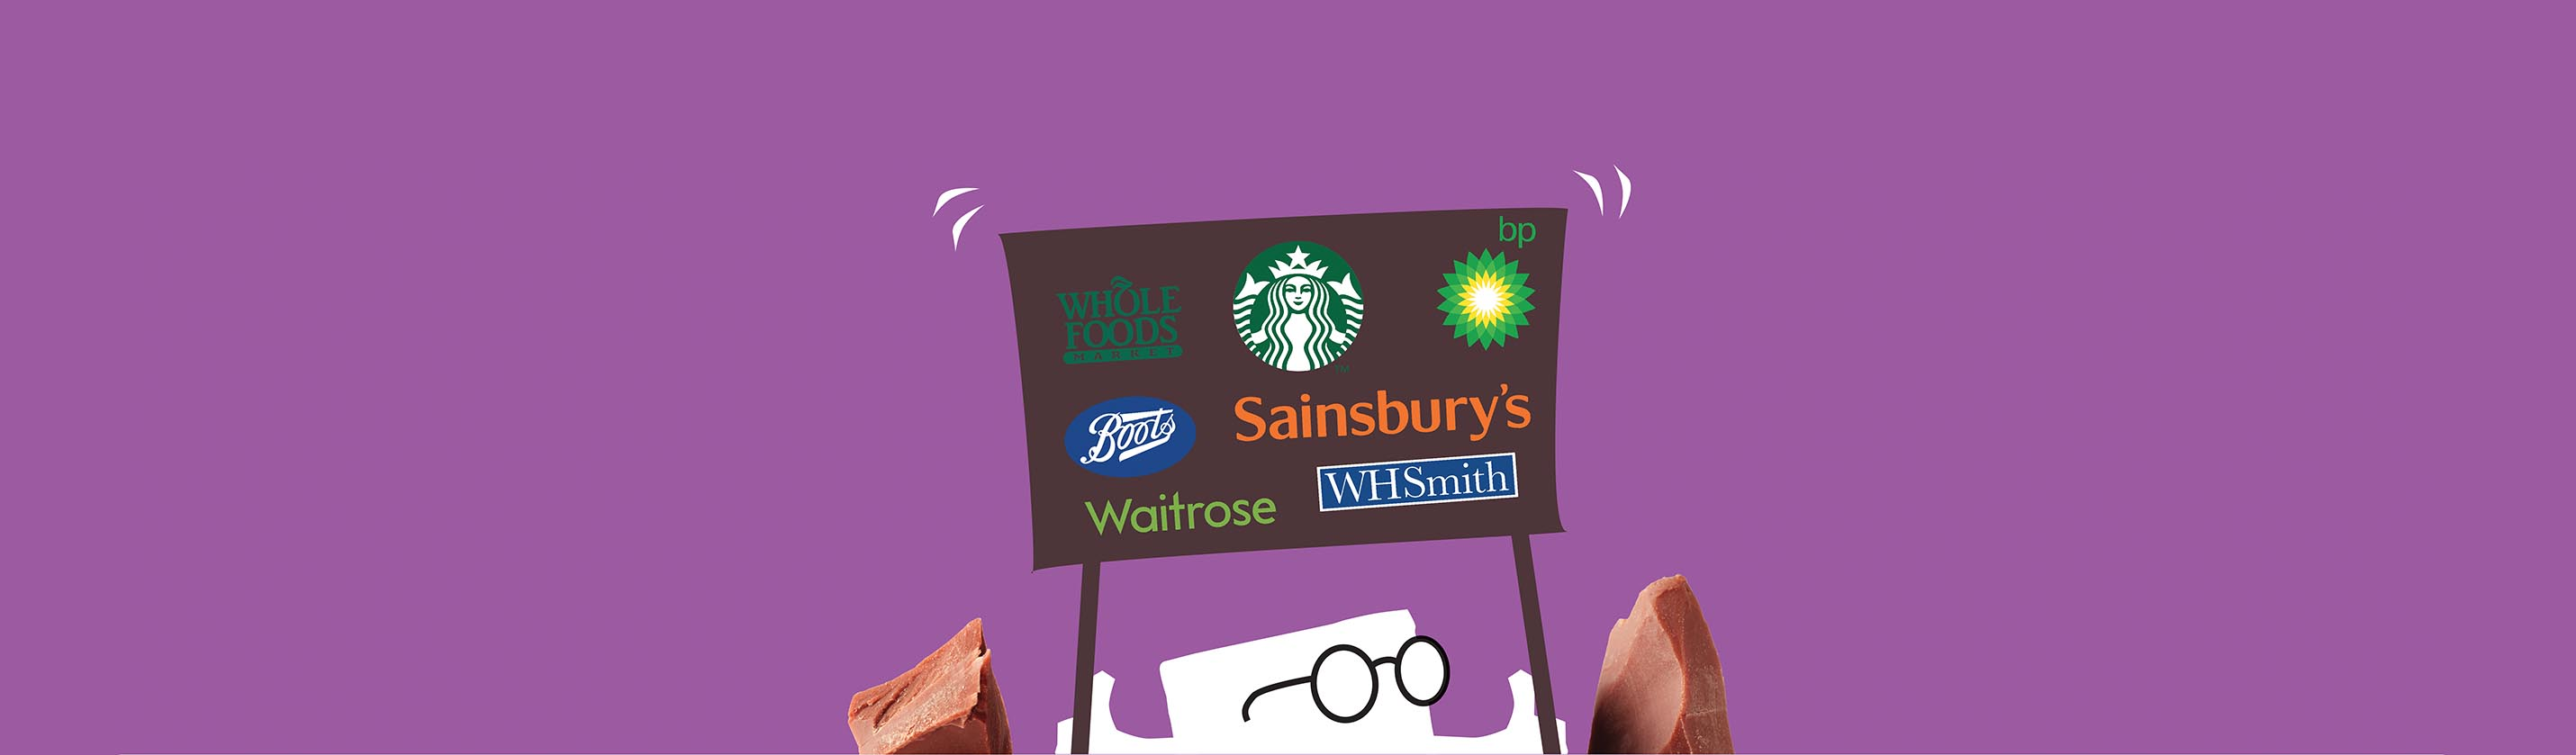 UK stockists of mallow and marsh bars and pouches includes - sainsburys, boots, waitrose, BP and many more